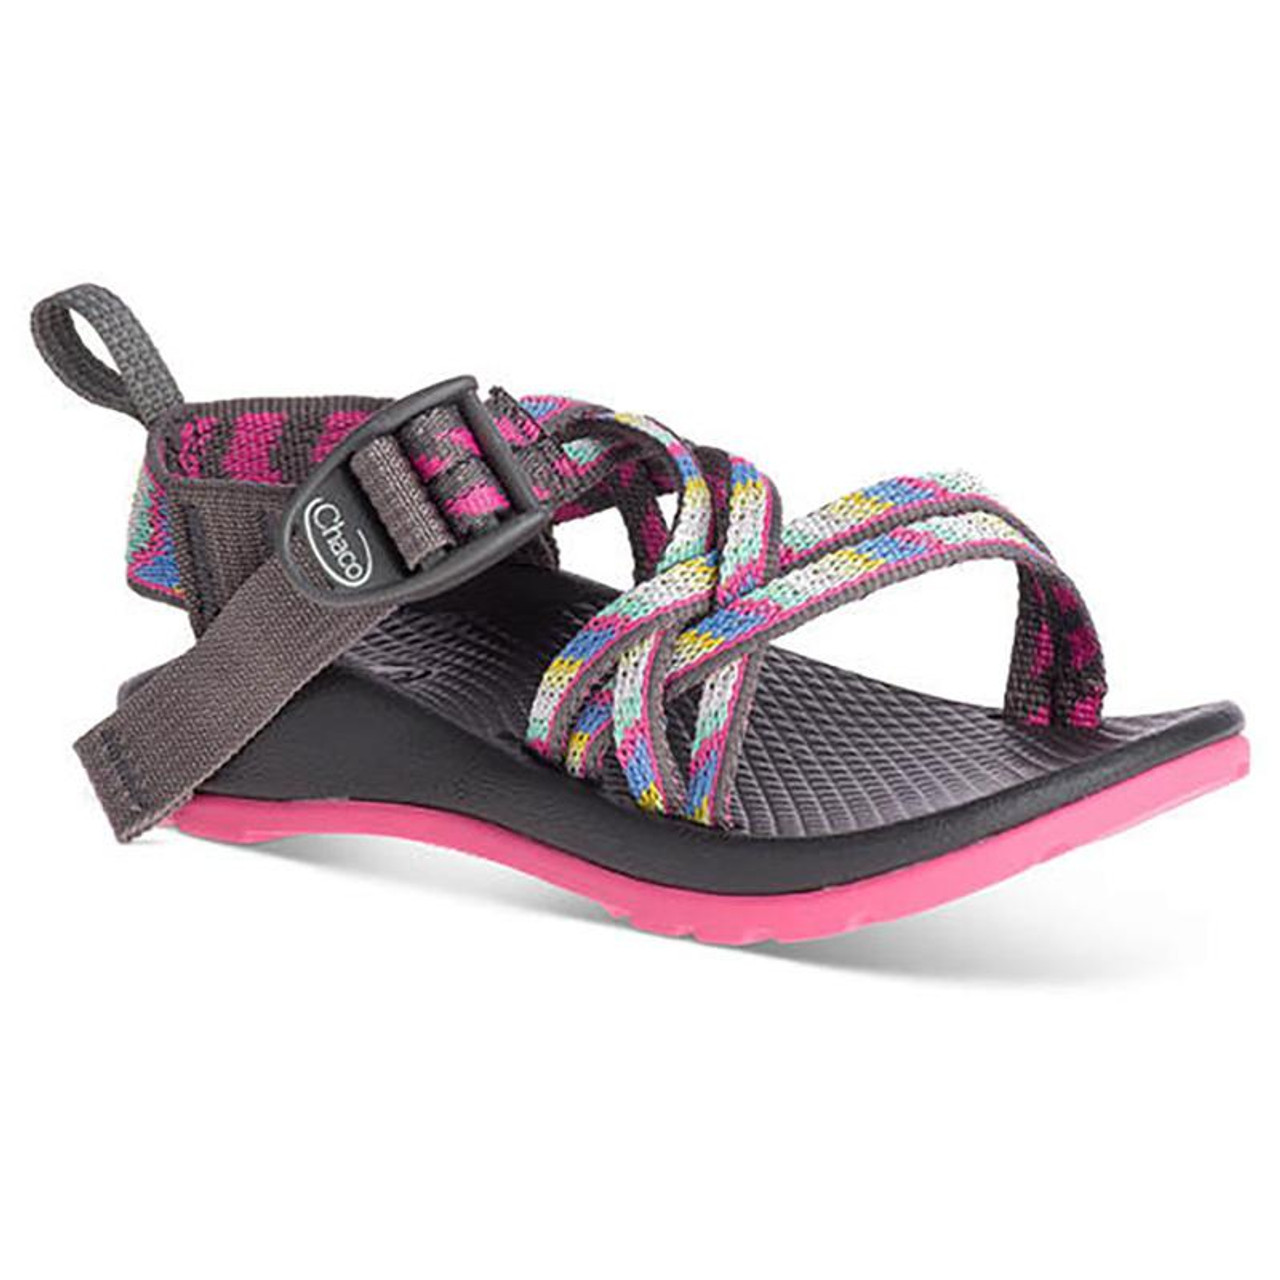 6f910dcb7ee1 Chaco Kid s Sandal - ZX 1 Kids - Fletched Pink - Surf and Dirt